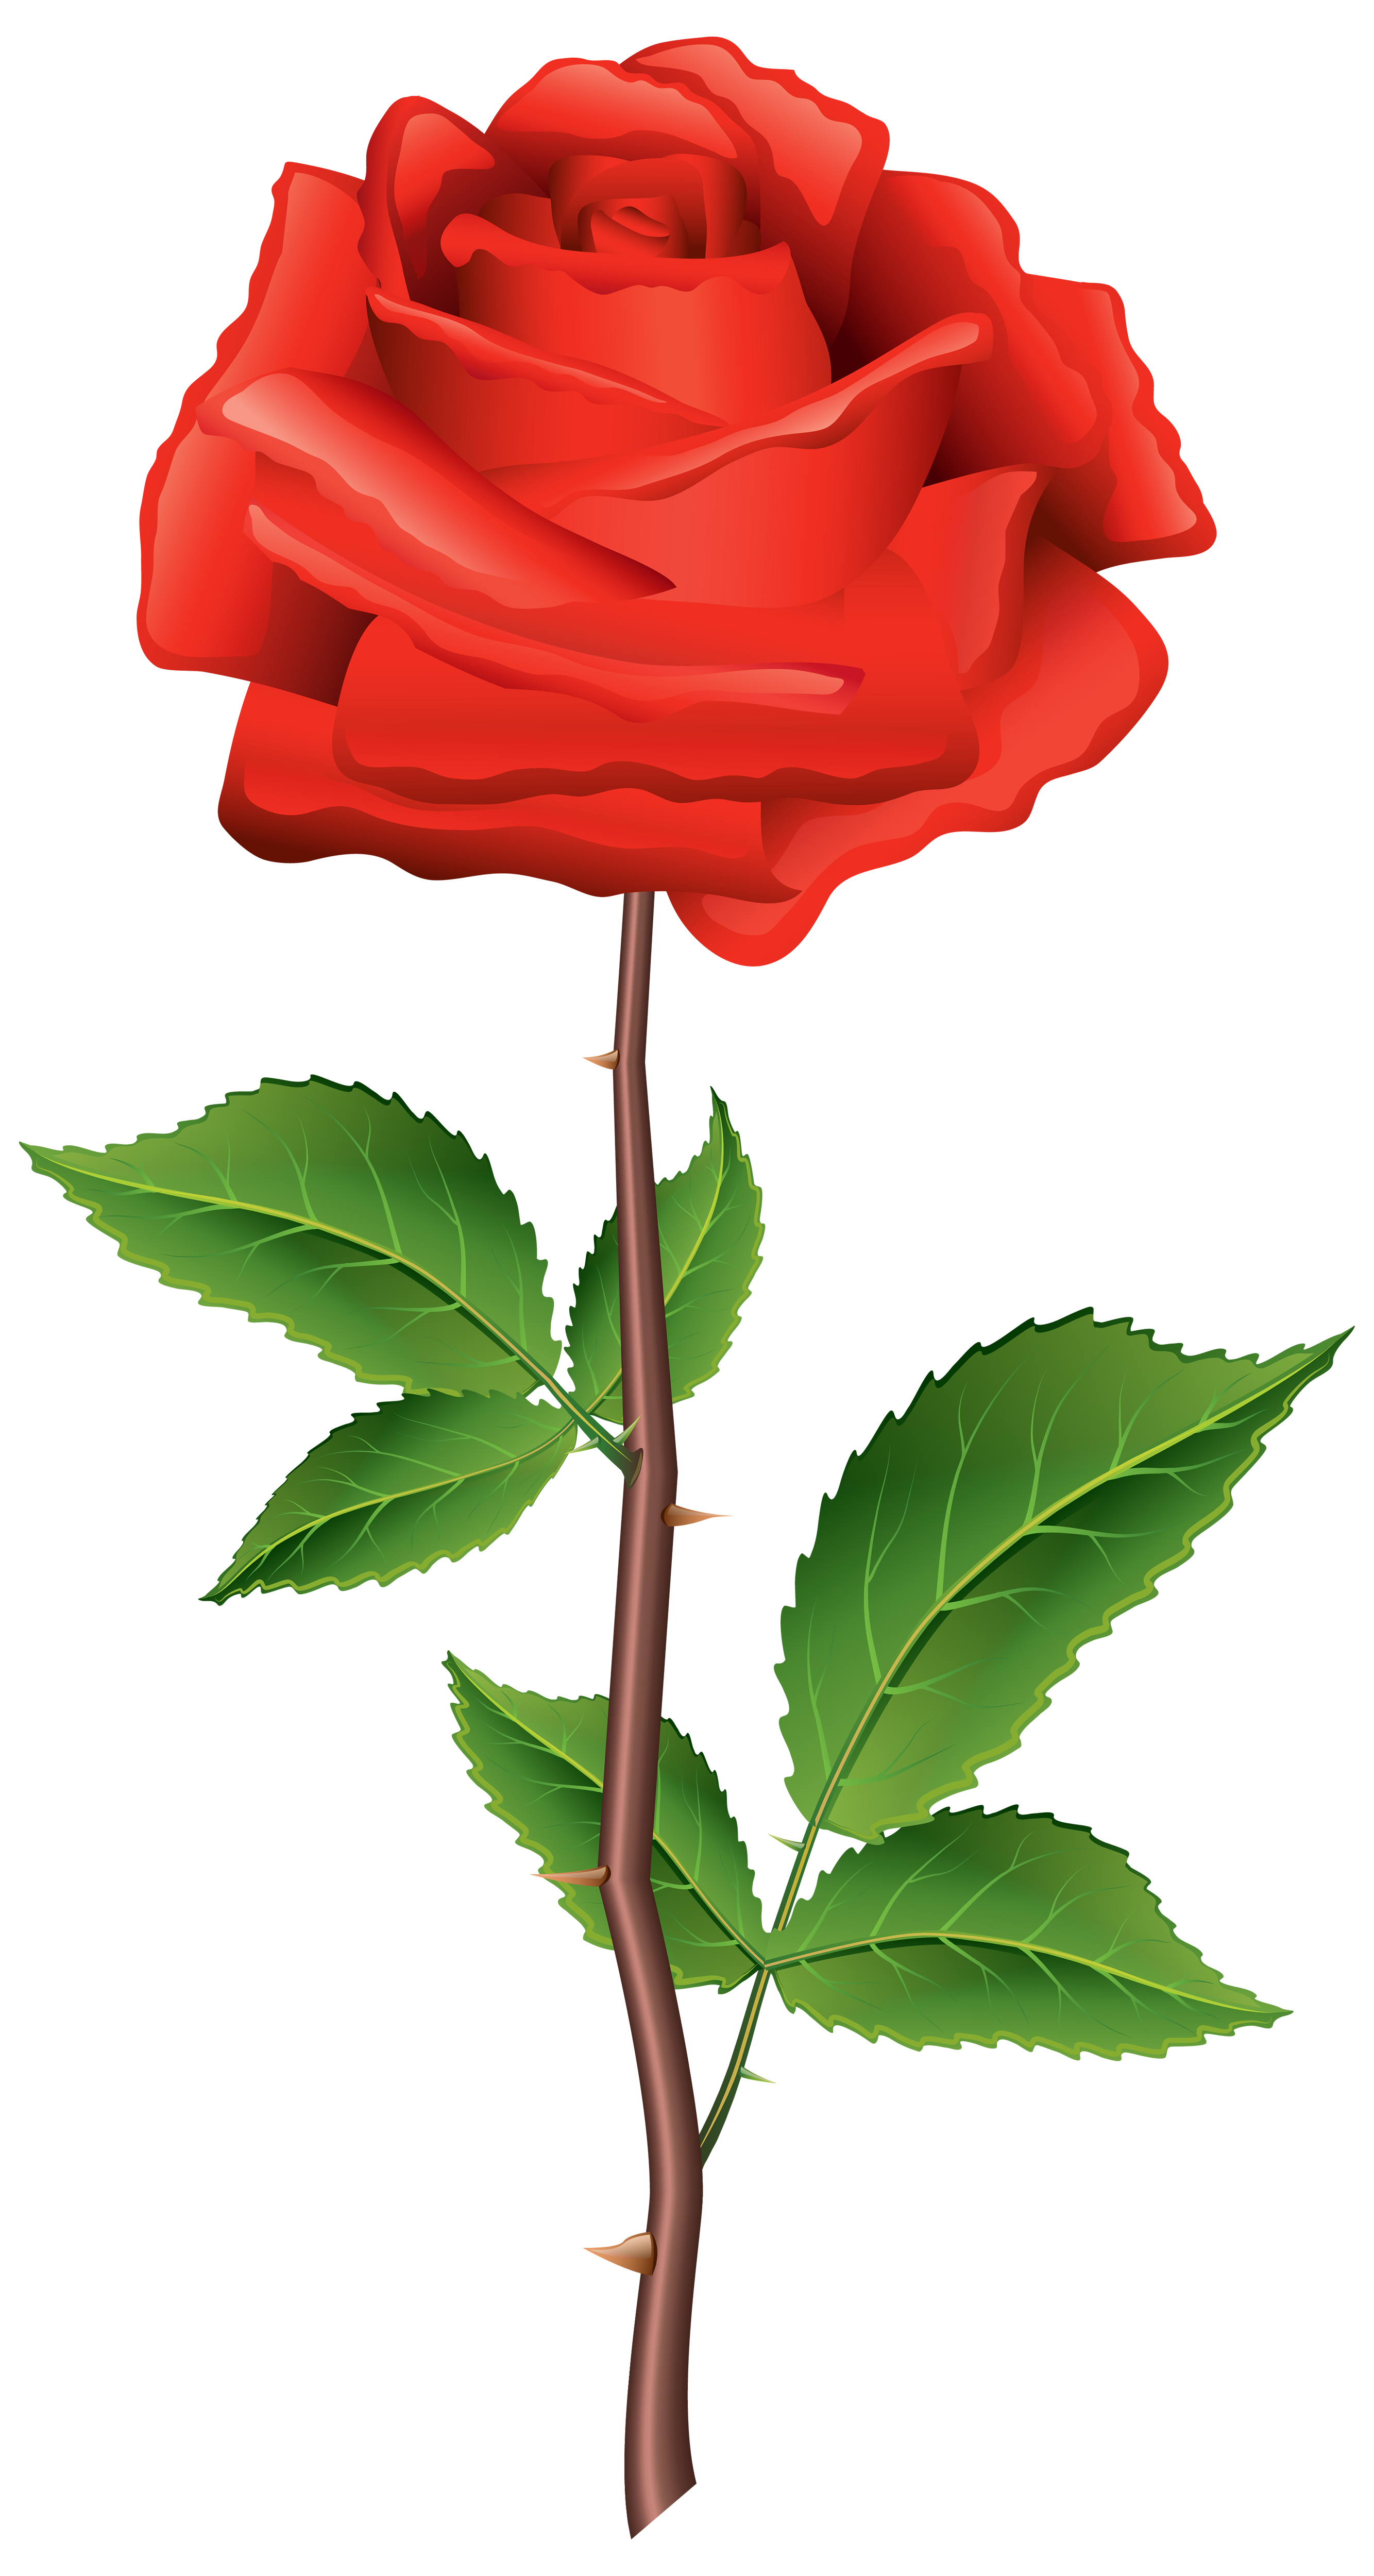 Simple Rose Clipart At Getdrawings Com Free For Personal Use